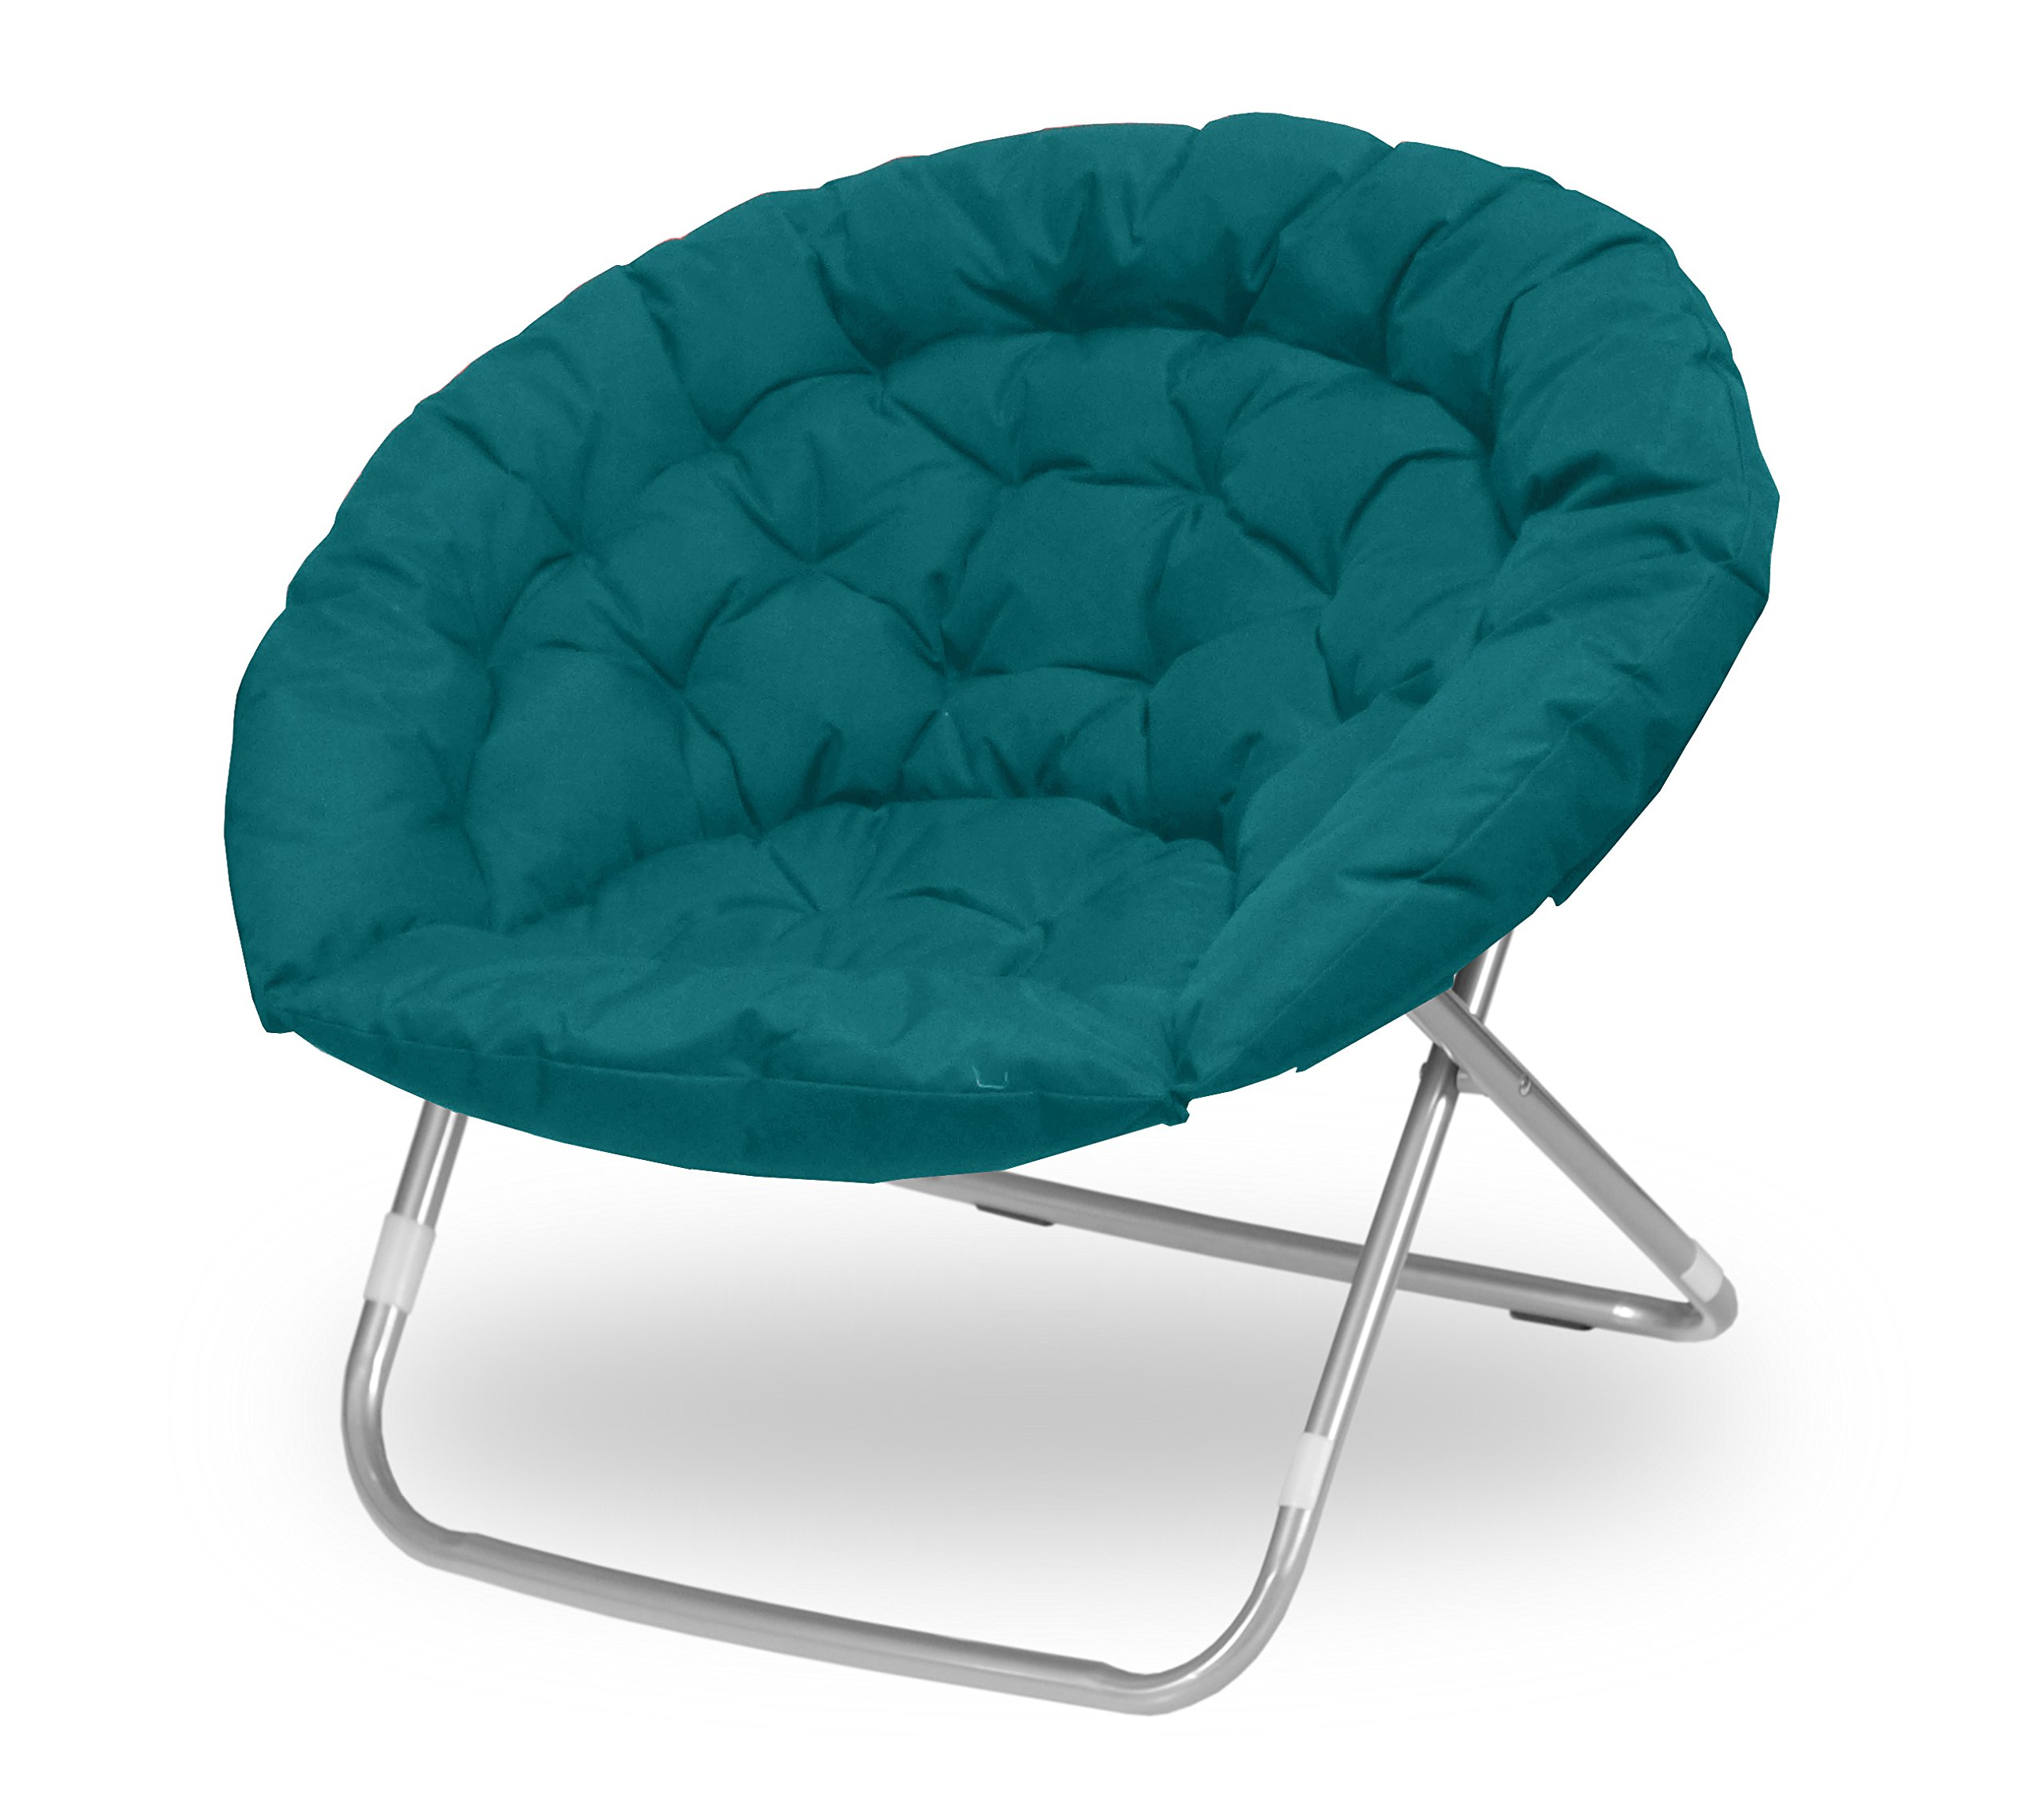 Urban Shop Oversized Saucer Chair, teal by Urban Shop